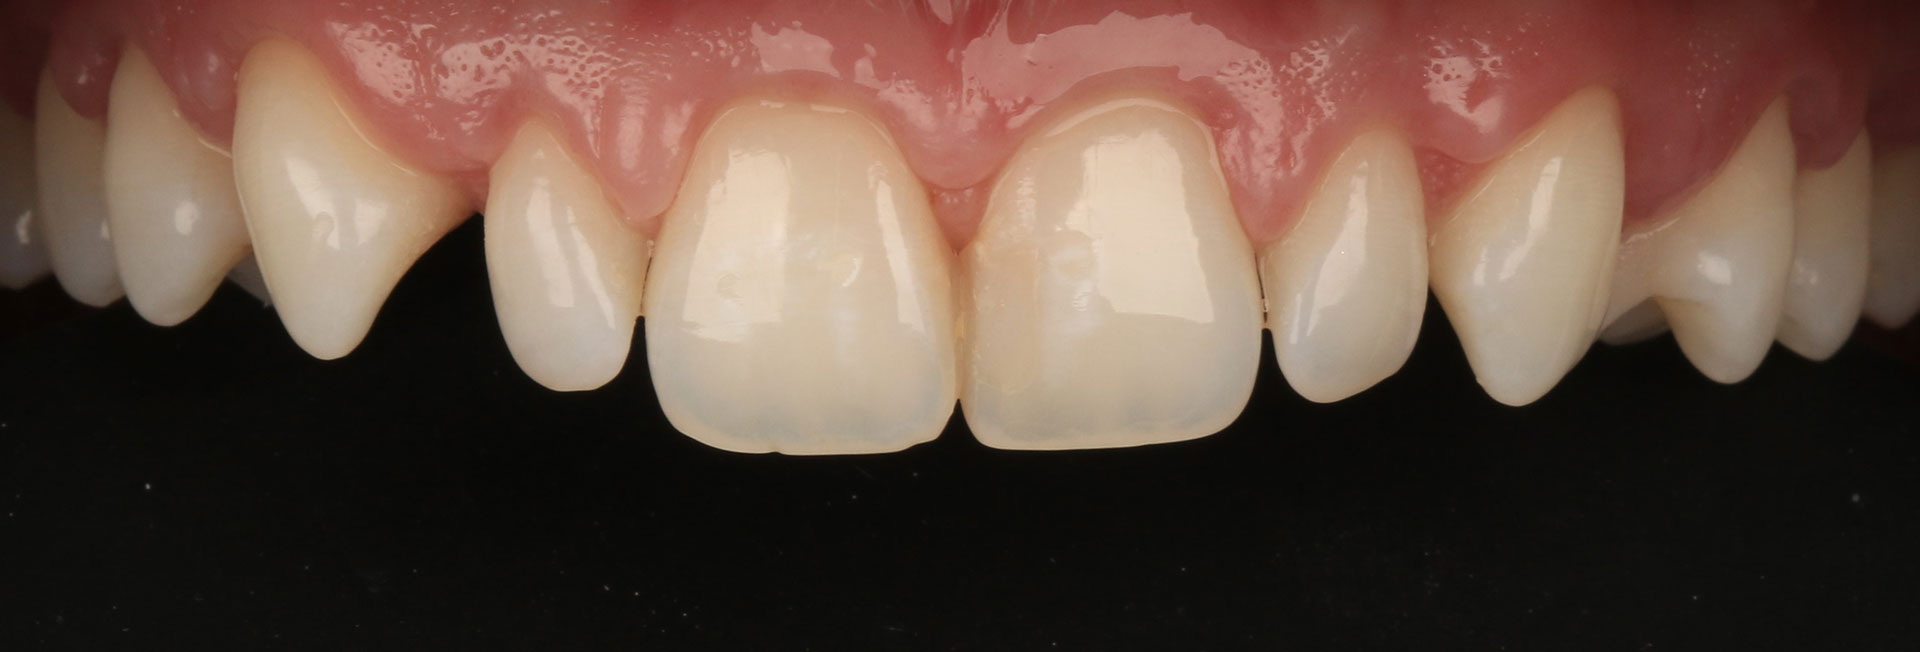 dentes-depois-pos-gengivectomia-CT